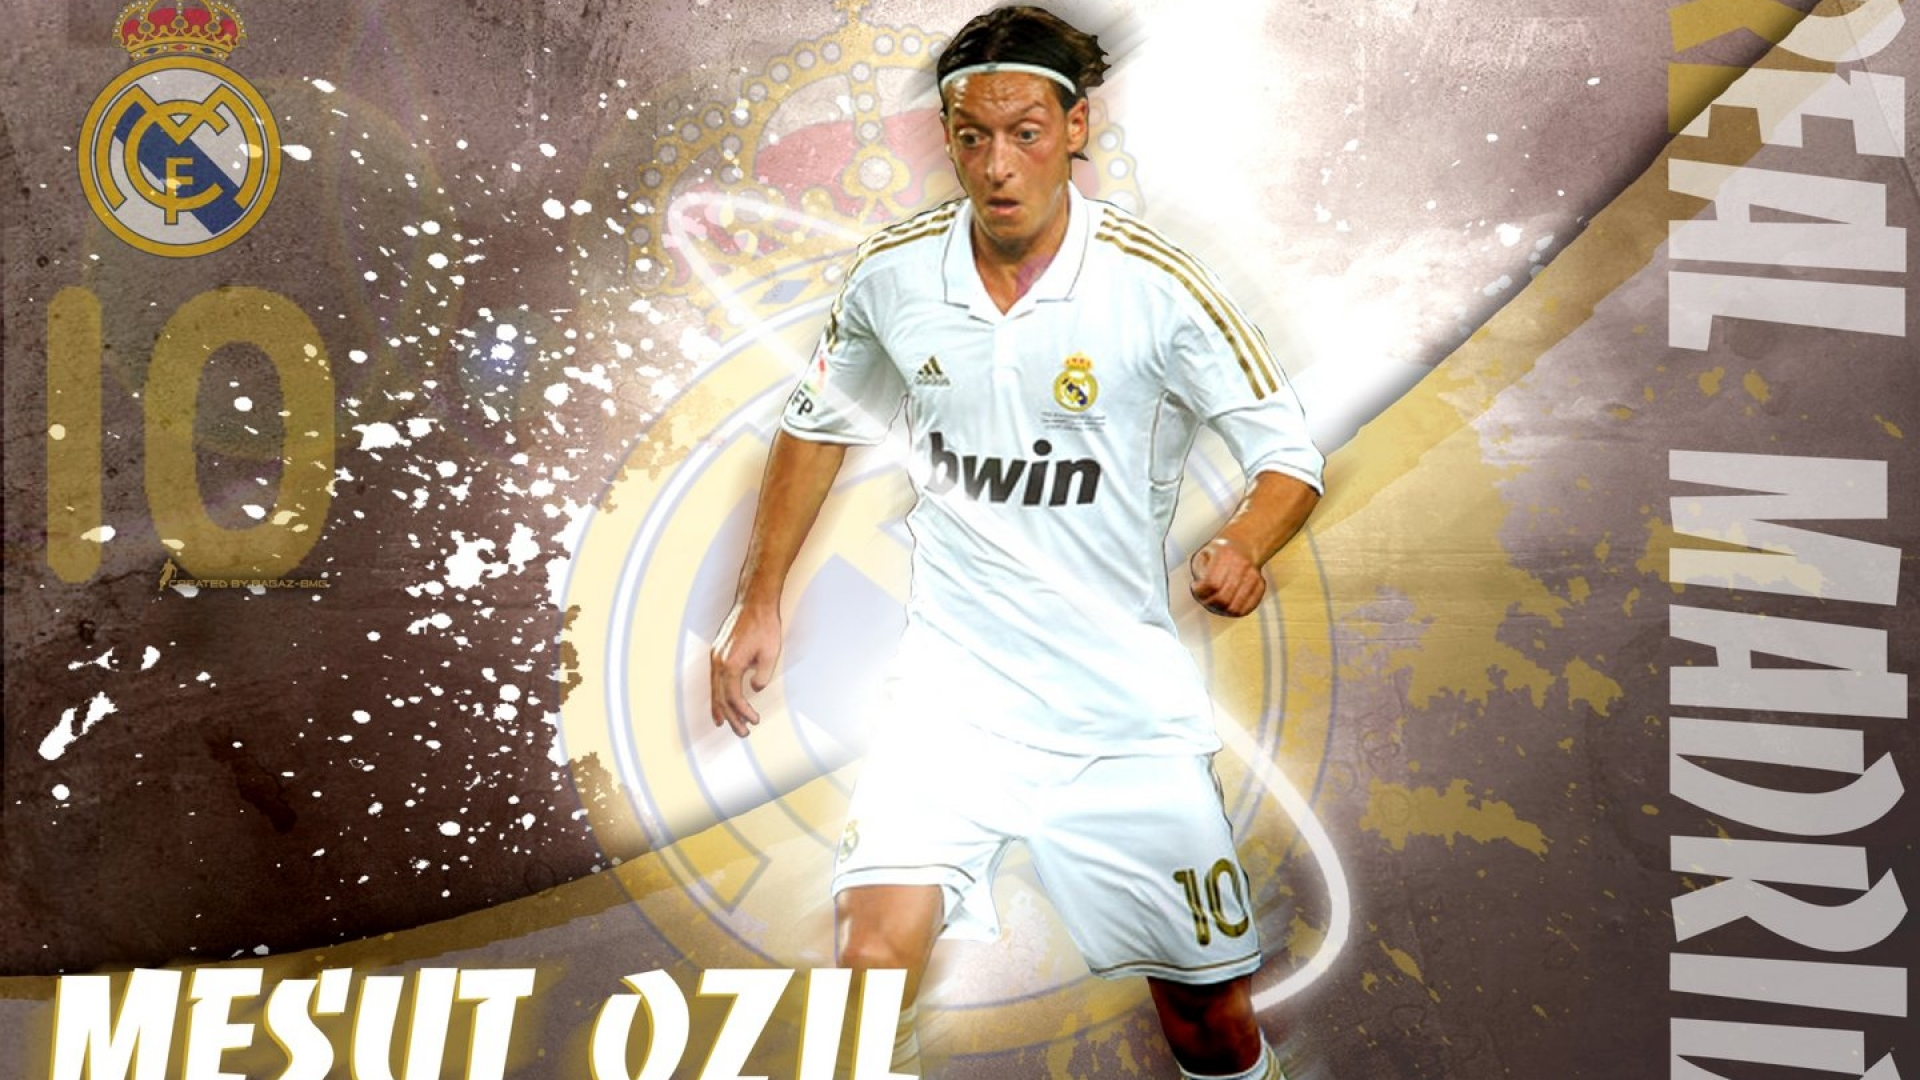 Real Madrid Wallpaper Mesut Ozil Wallpaper